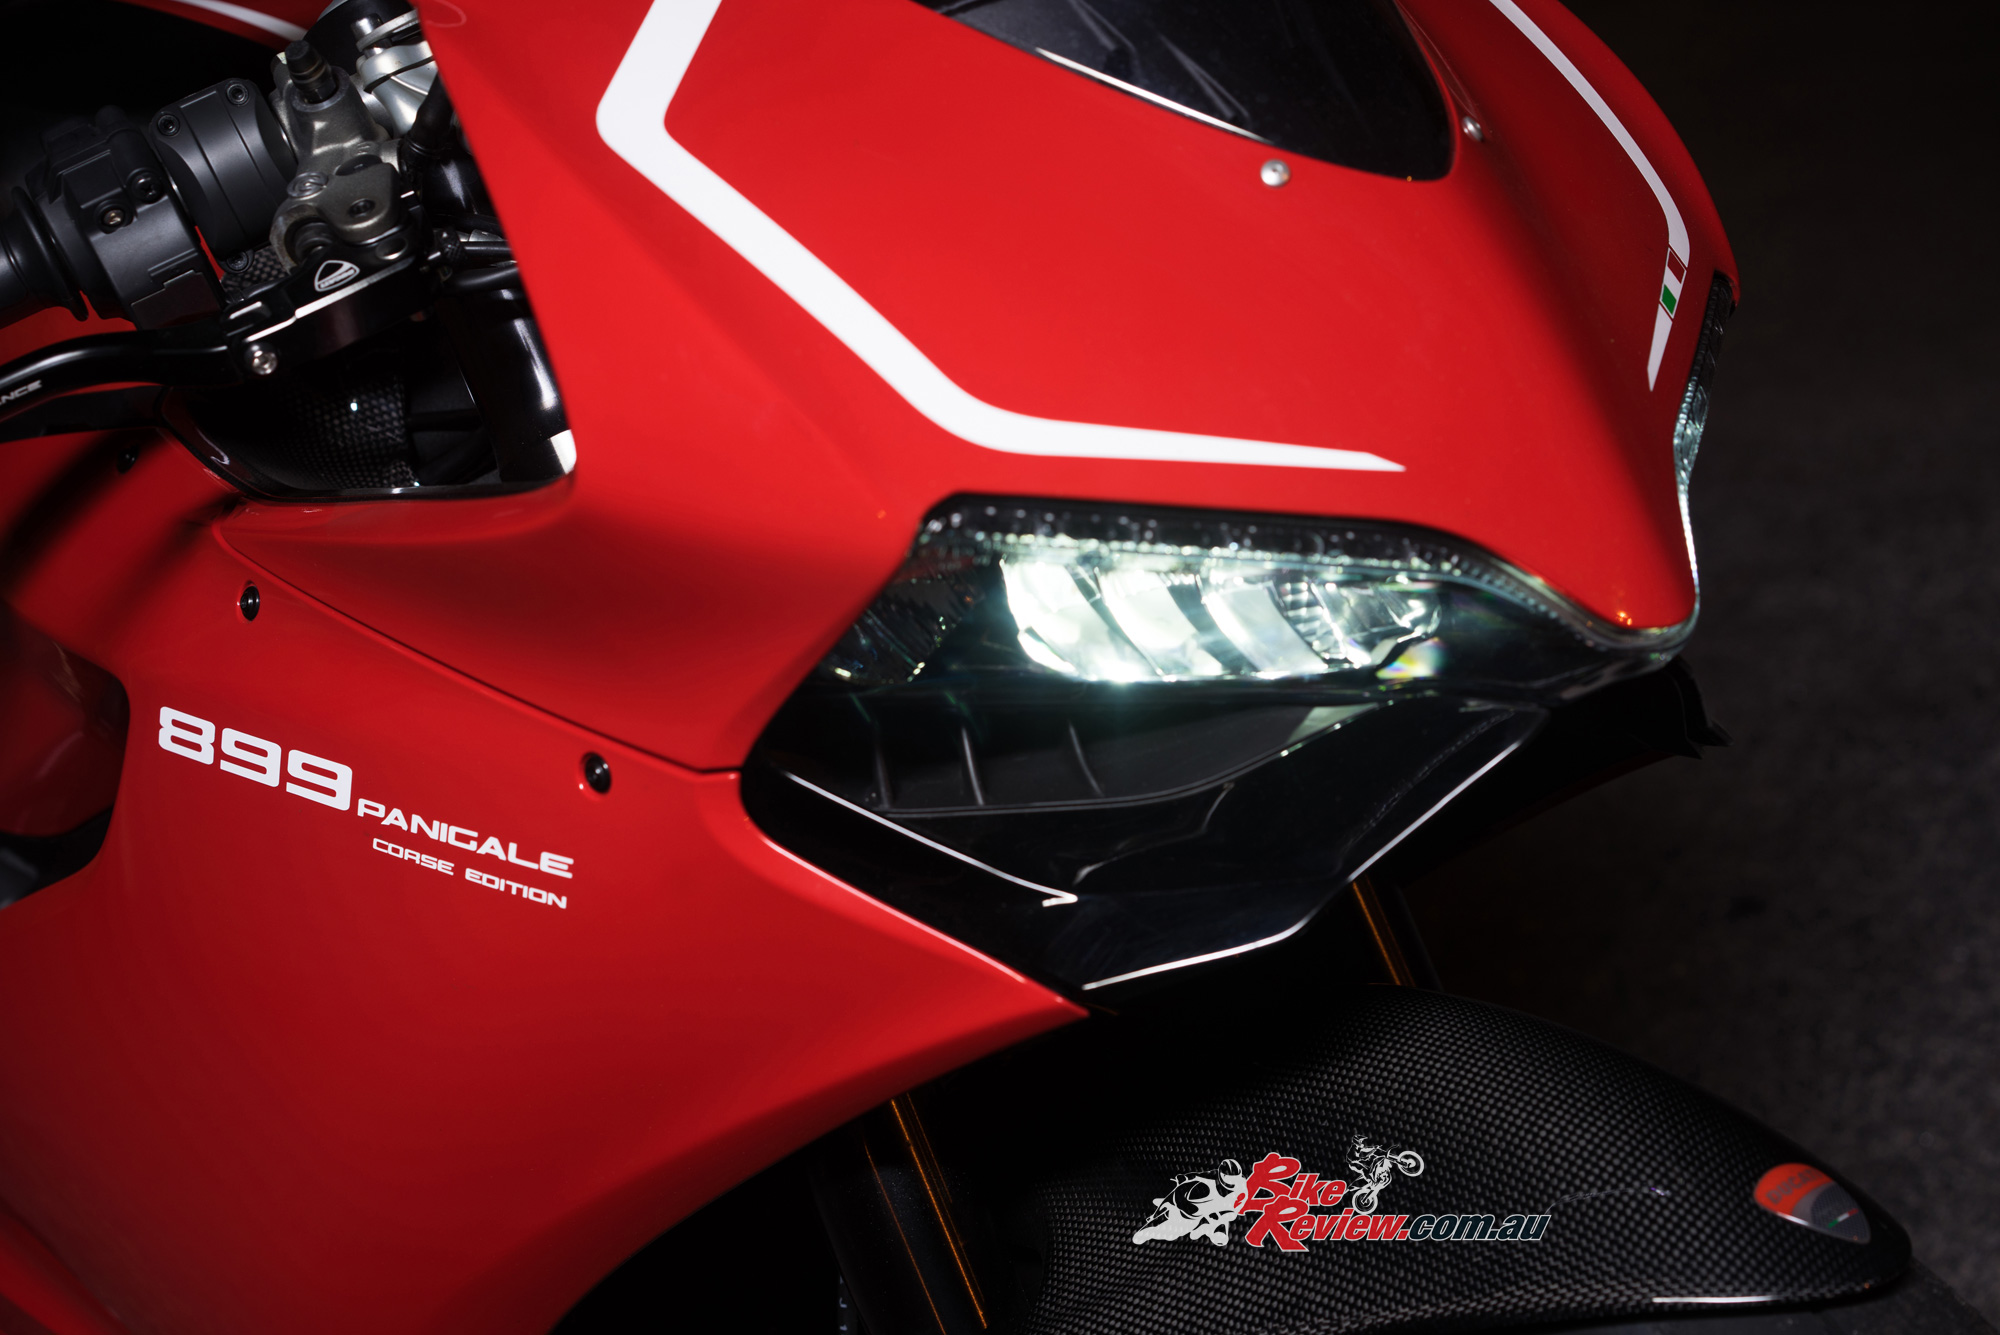 Custom Ducati 899 Panigale Corse Edition Bike Review